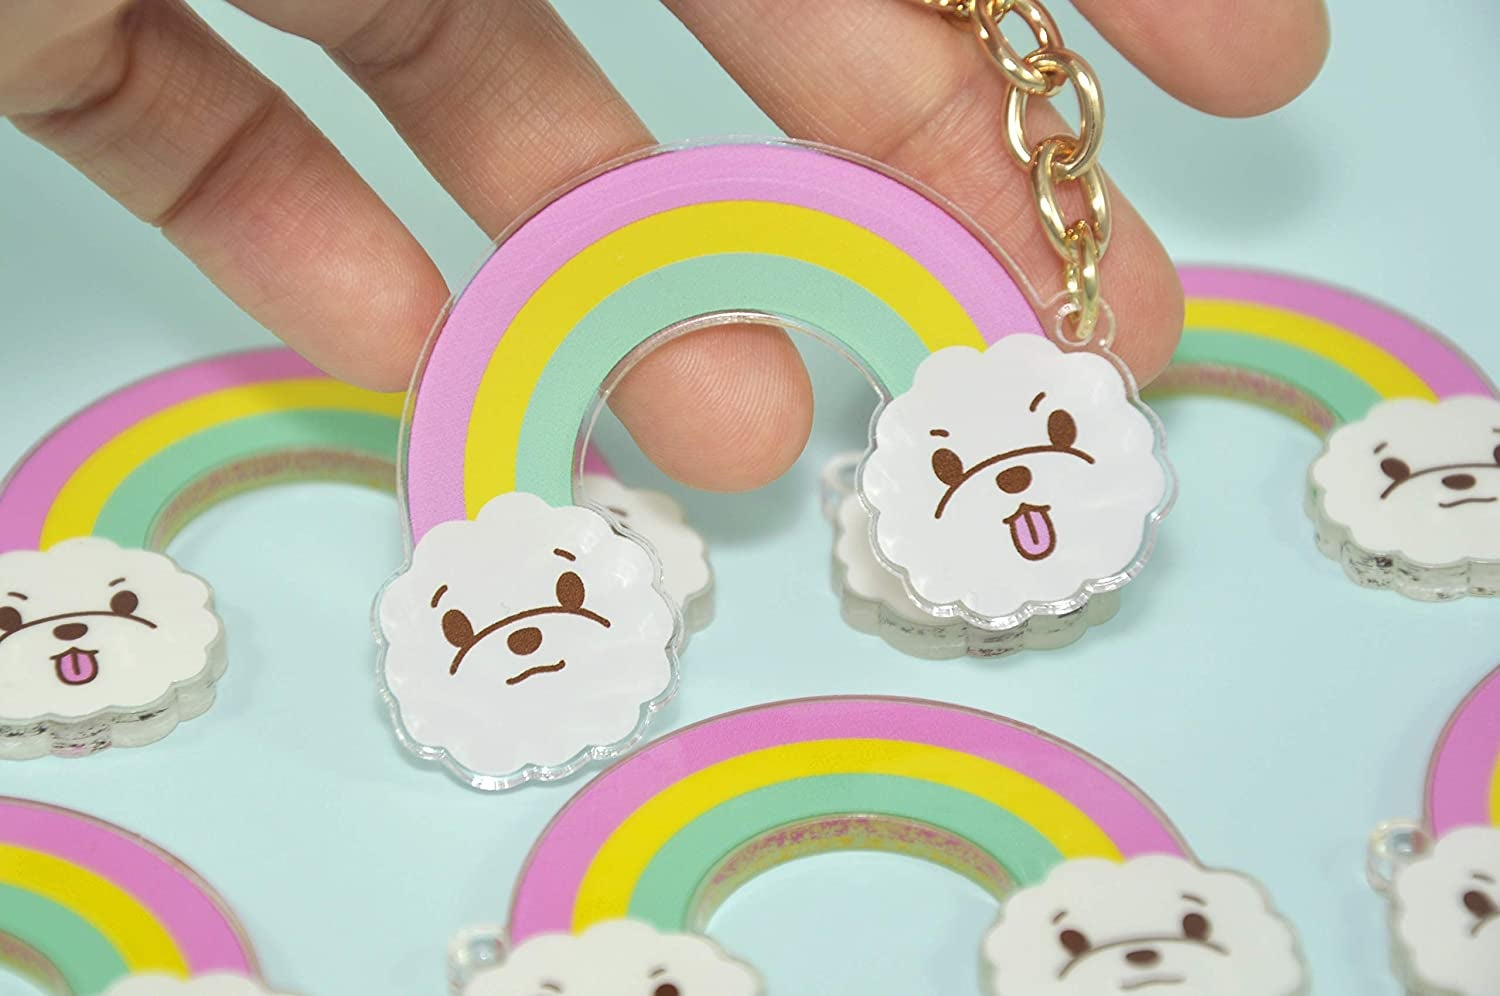 rainbow with bichon faces for the clouds